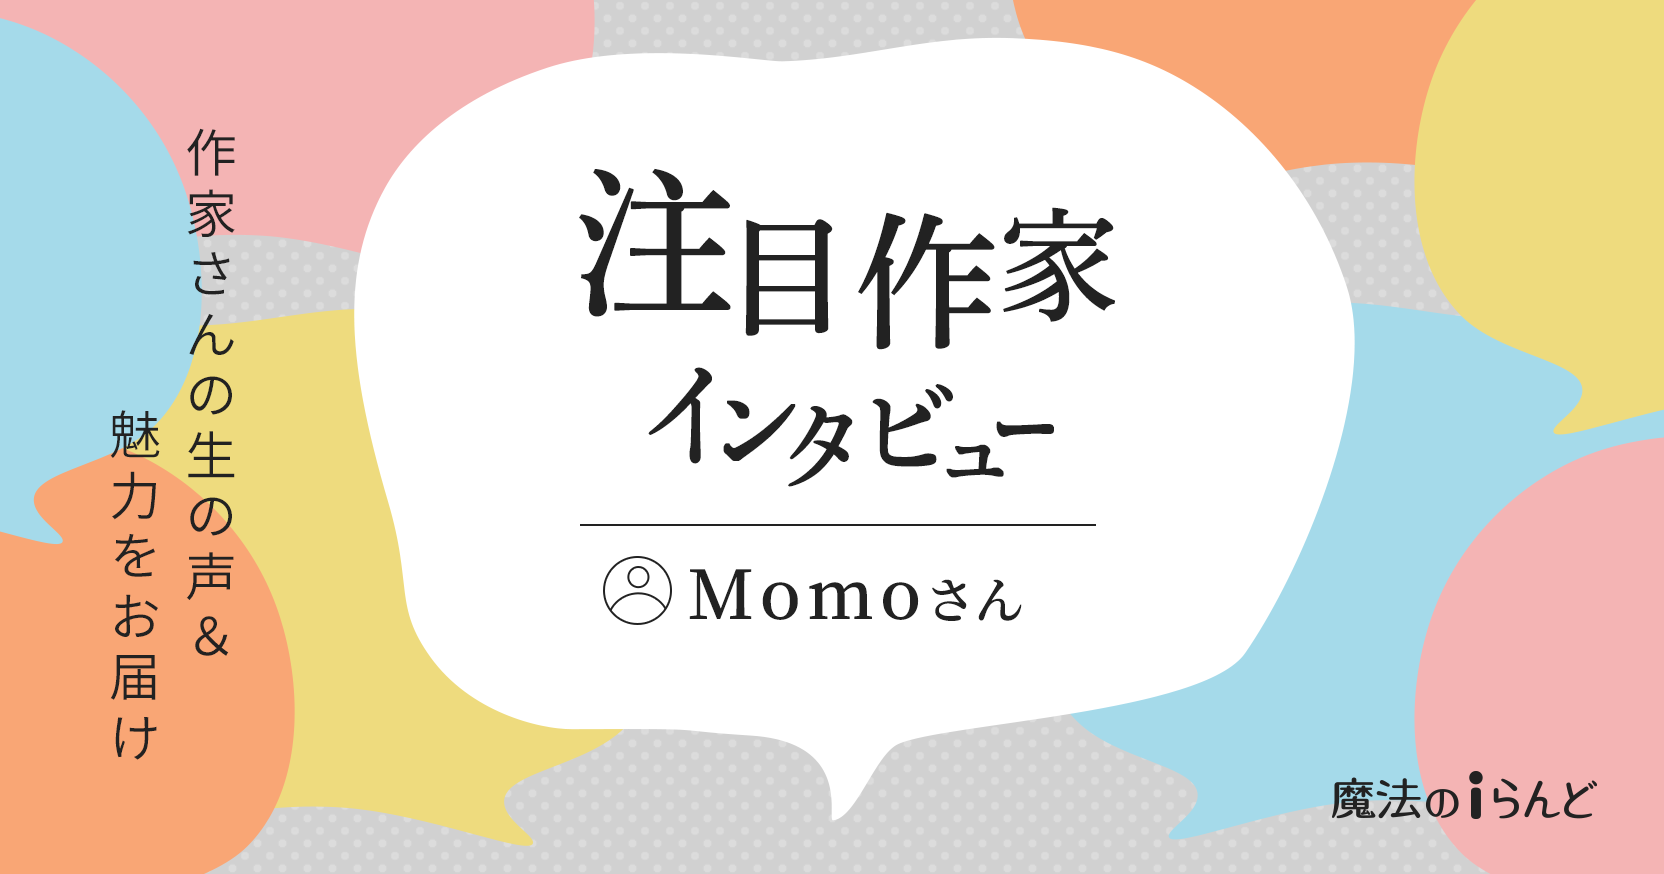 https://storage.googleapis.com/blog-info/entry/2020/11/interview_ogp_momo.png